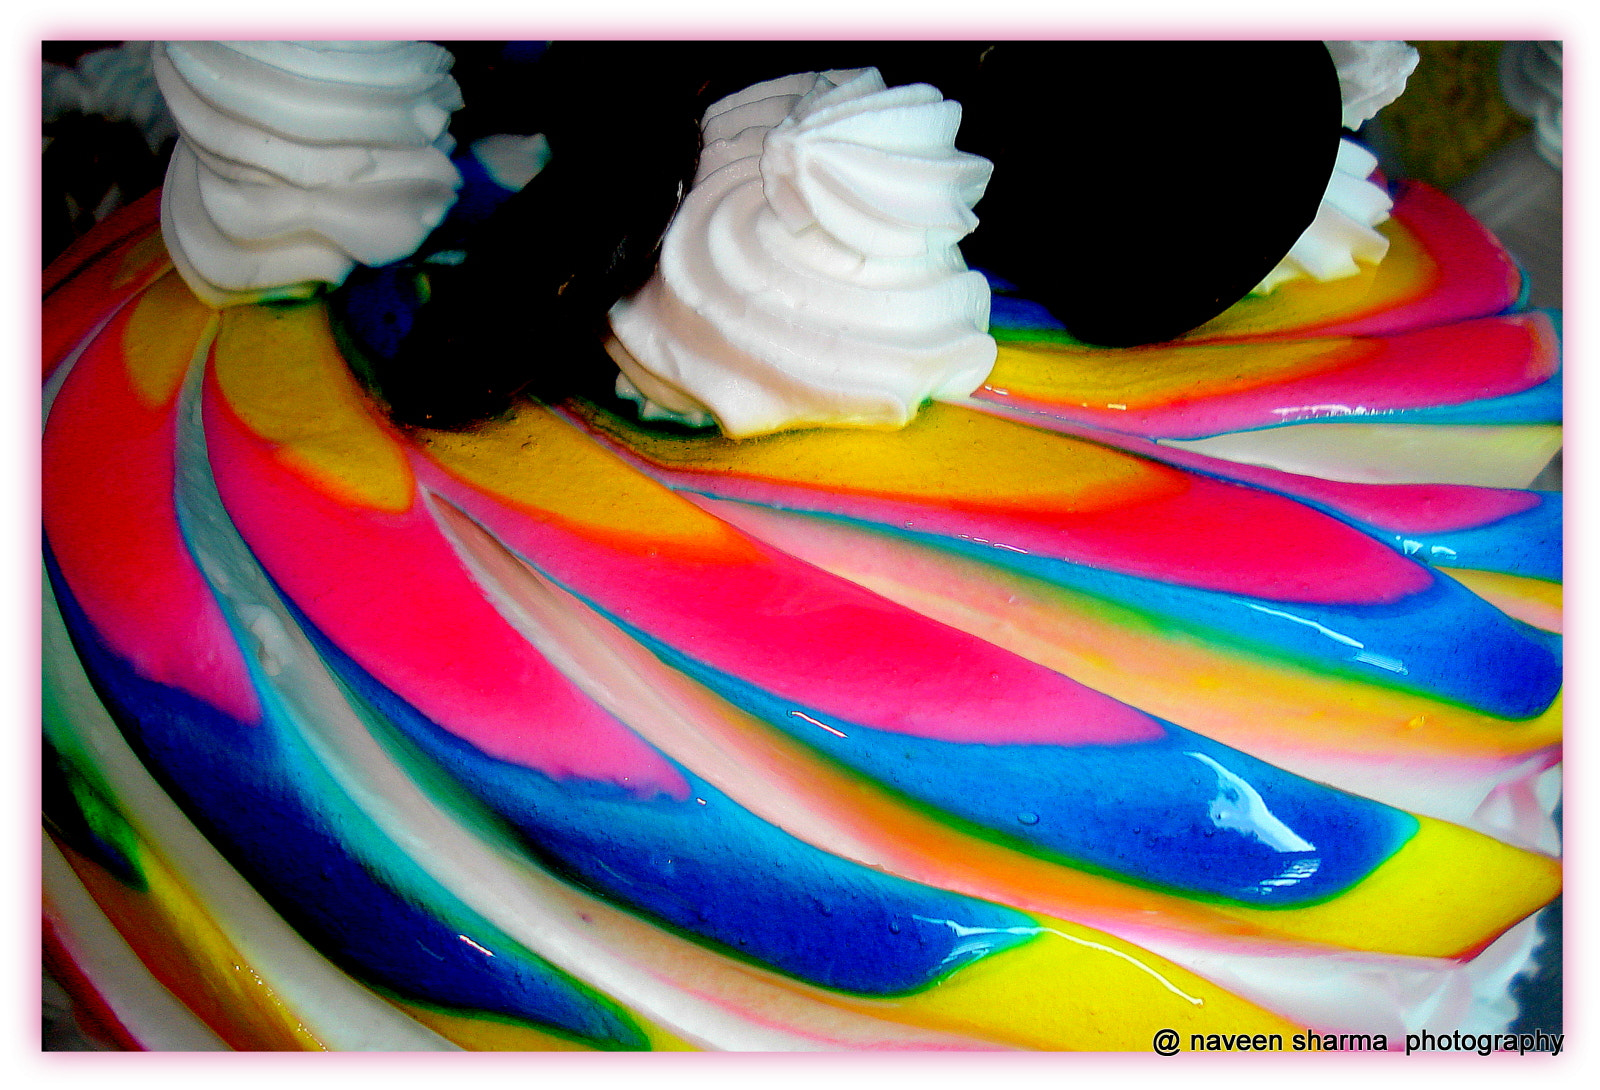 Photograph COLOURS OF CAKE by naveen sharma on 500px